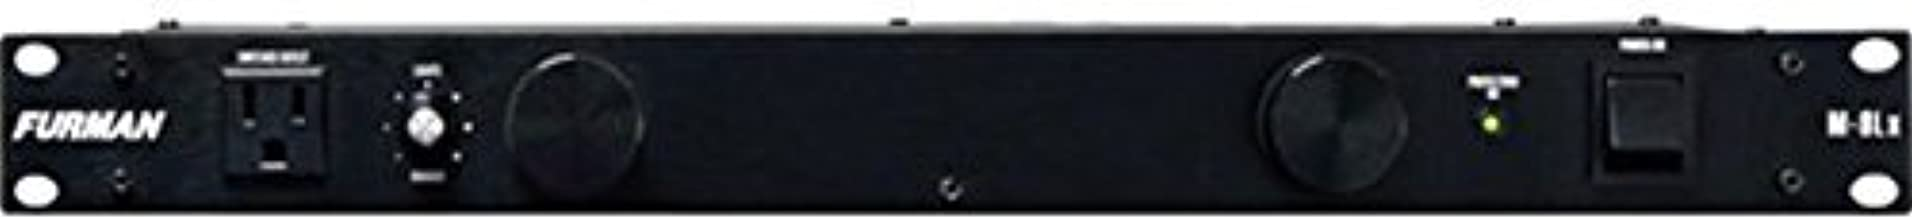 Furman M-8Lx Standard Level Power Conditioning, 15 Amp, 9 Outlets with Wall Wart Spacing,..